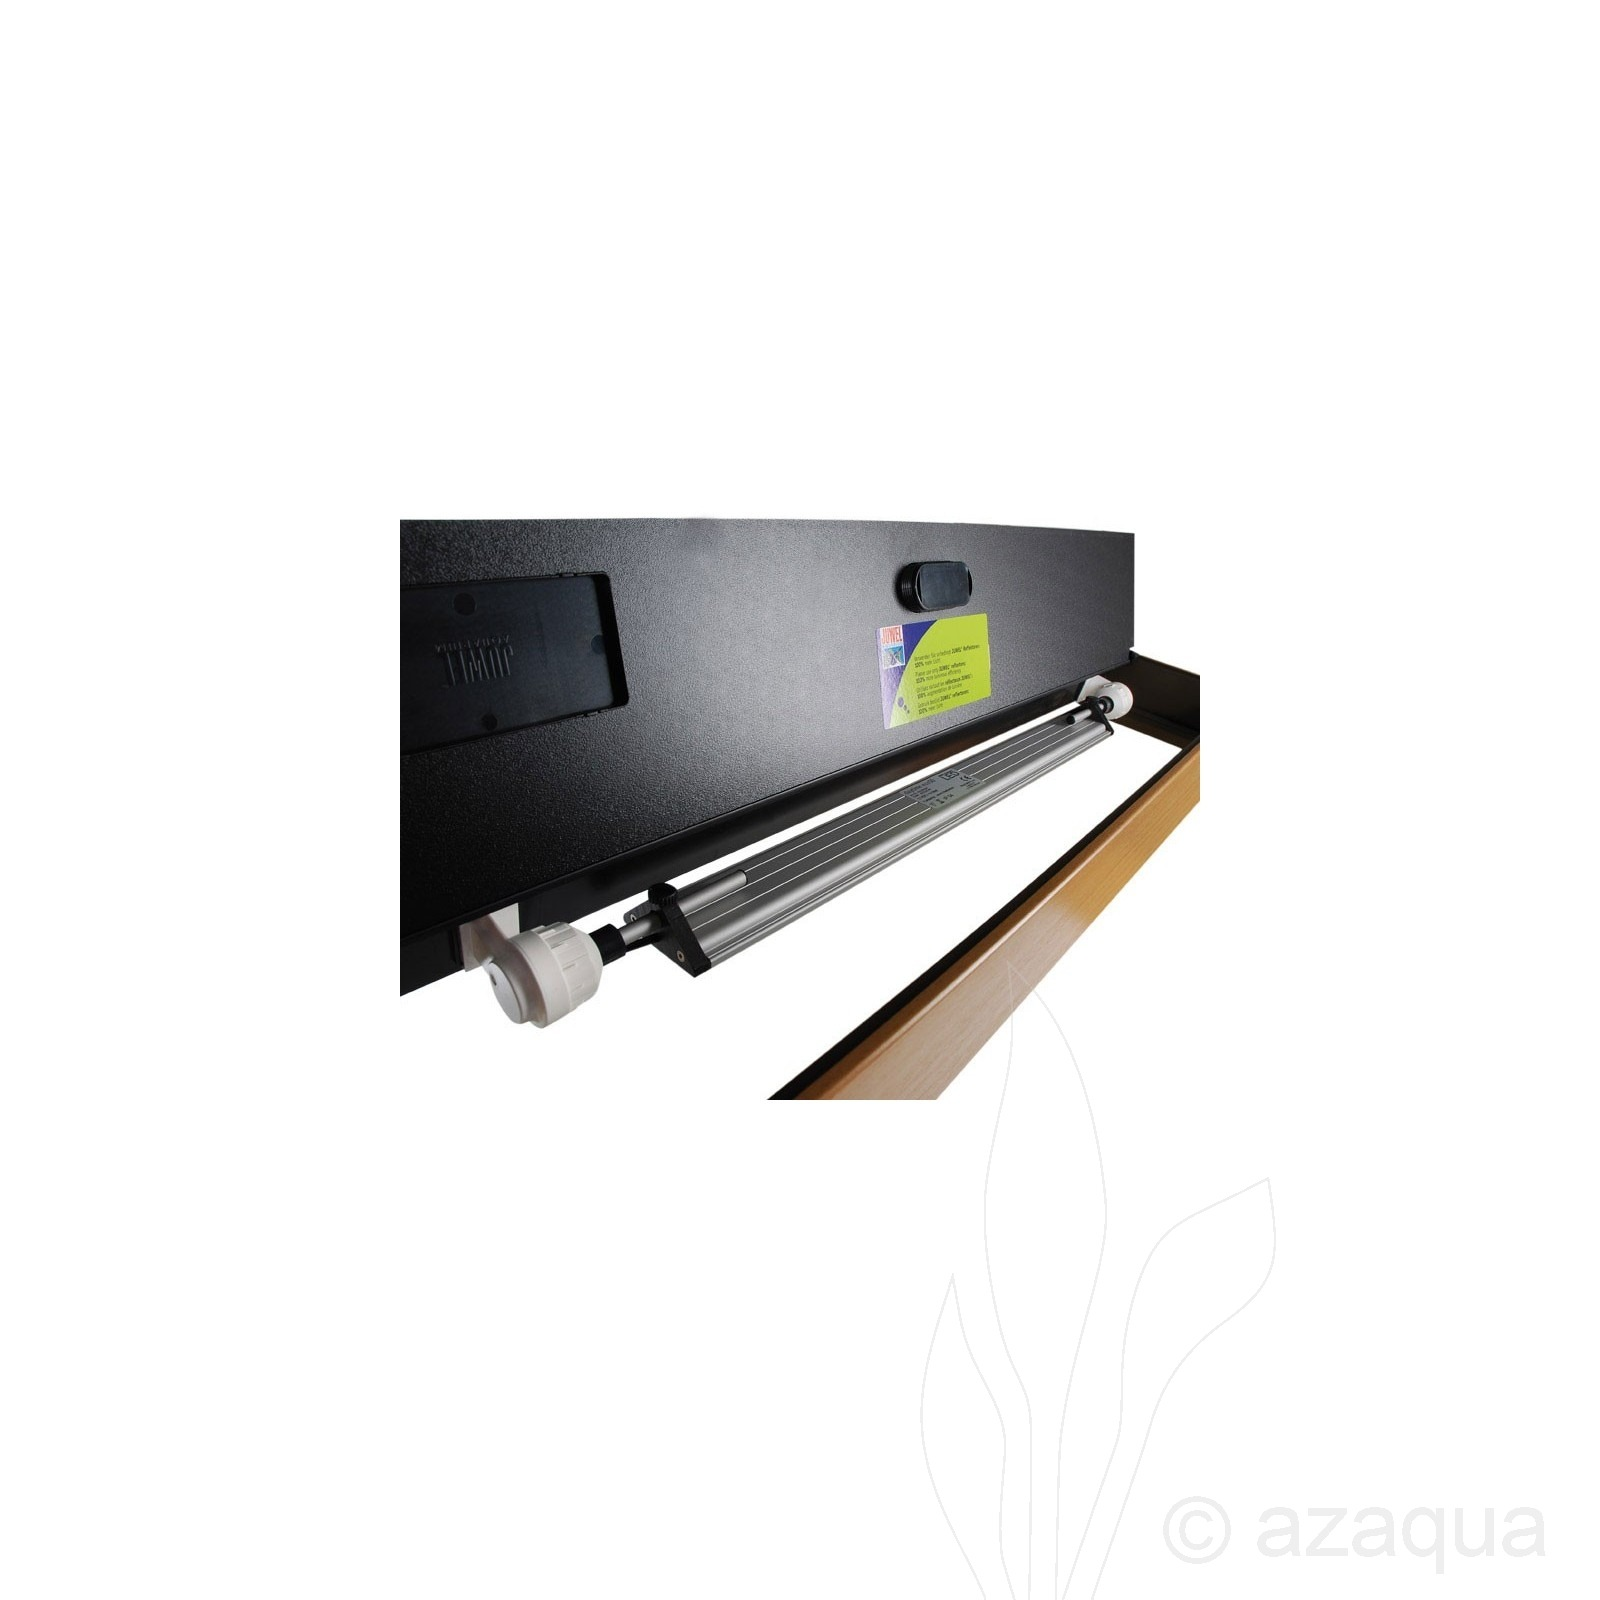 https://www.azaqua.nl/4175-thickbox_default/daytime-eco-120-aquarium-led-verlichting.jpg